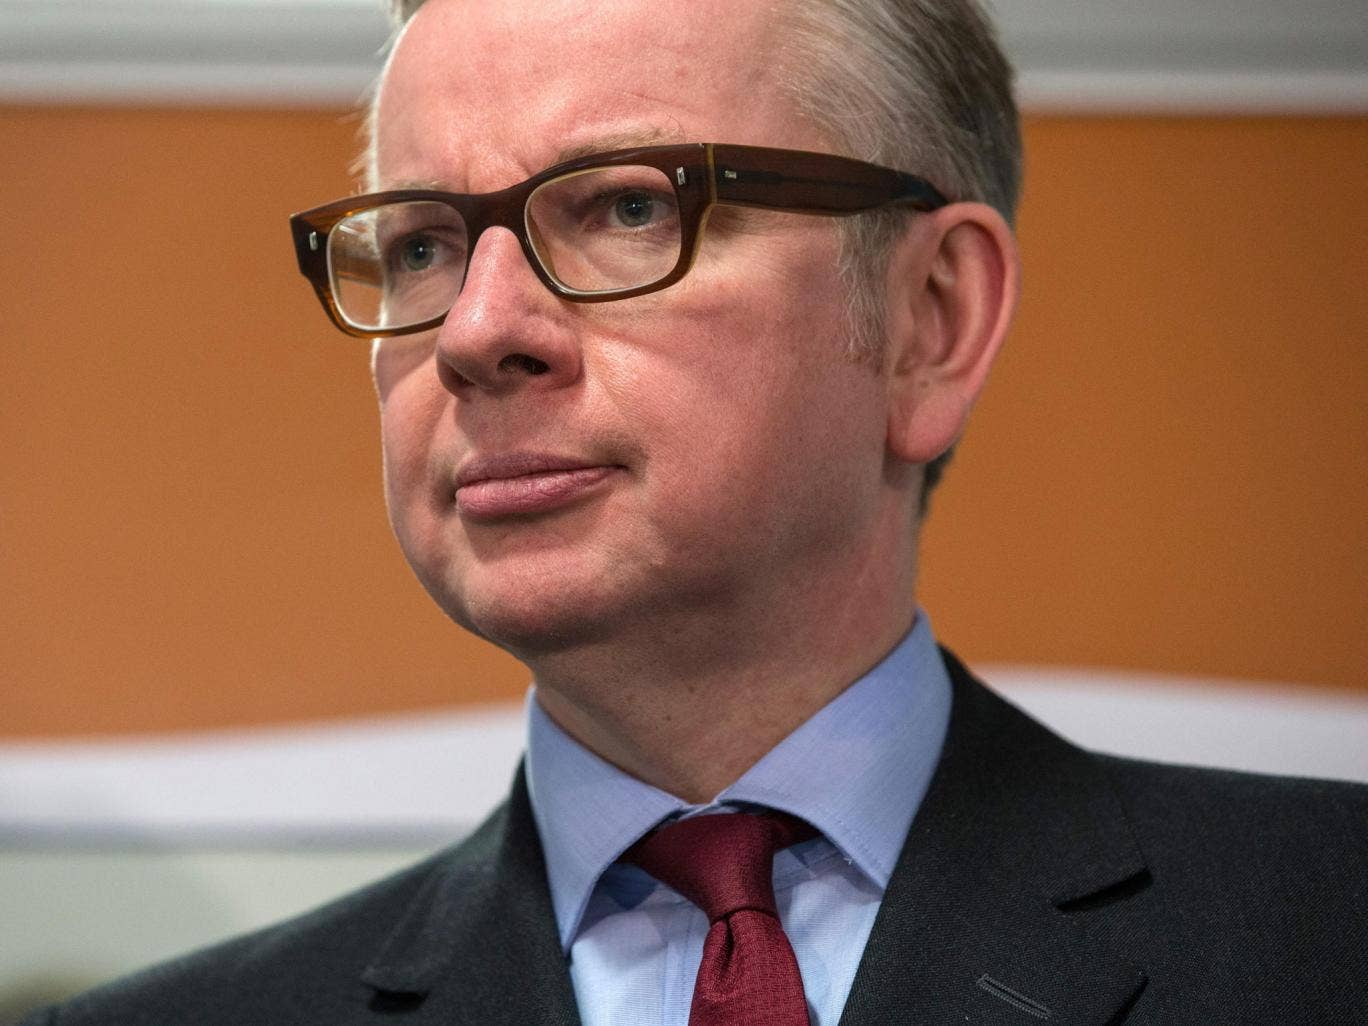 Michael Gove will attack those who oppose his school reforms in a speech to the right-of-centre Policy Exchange think tank